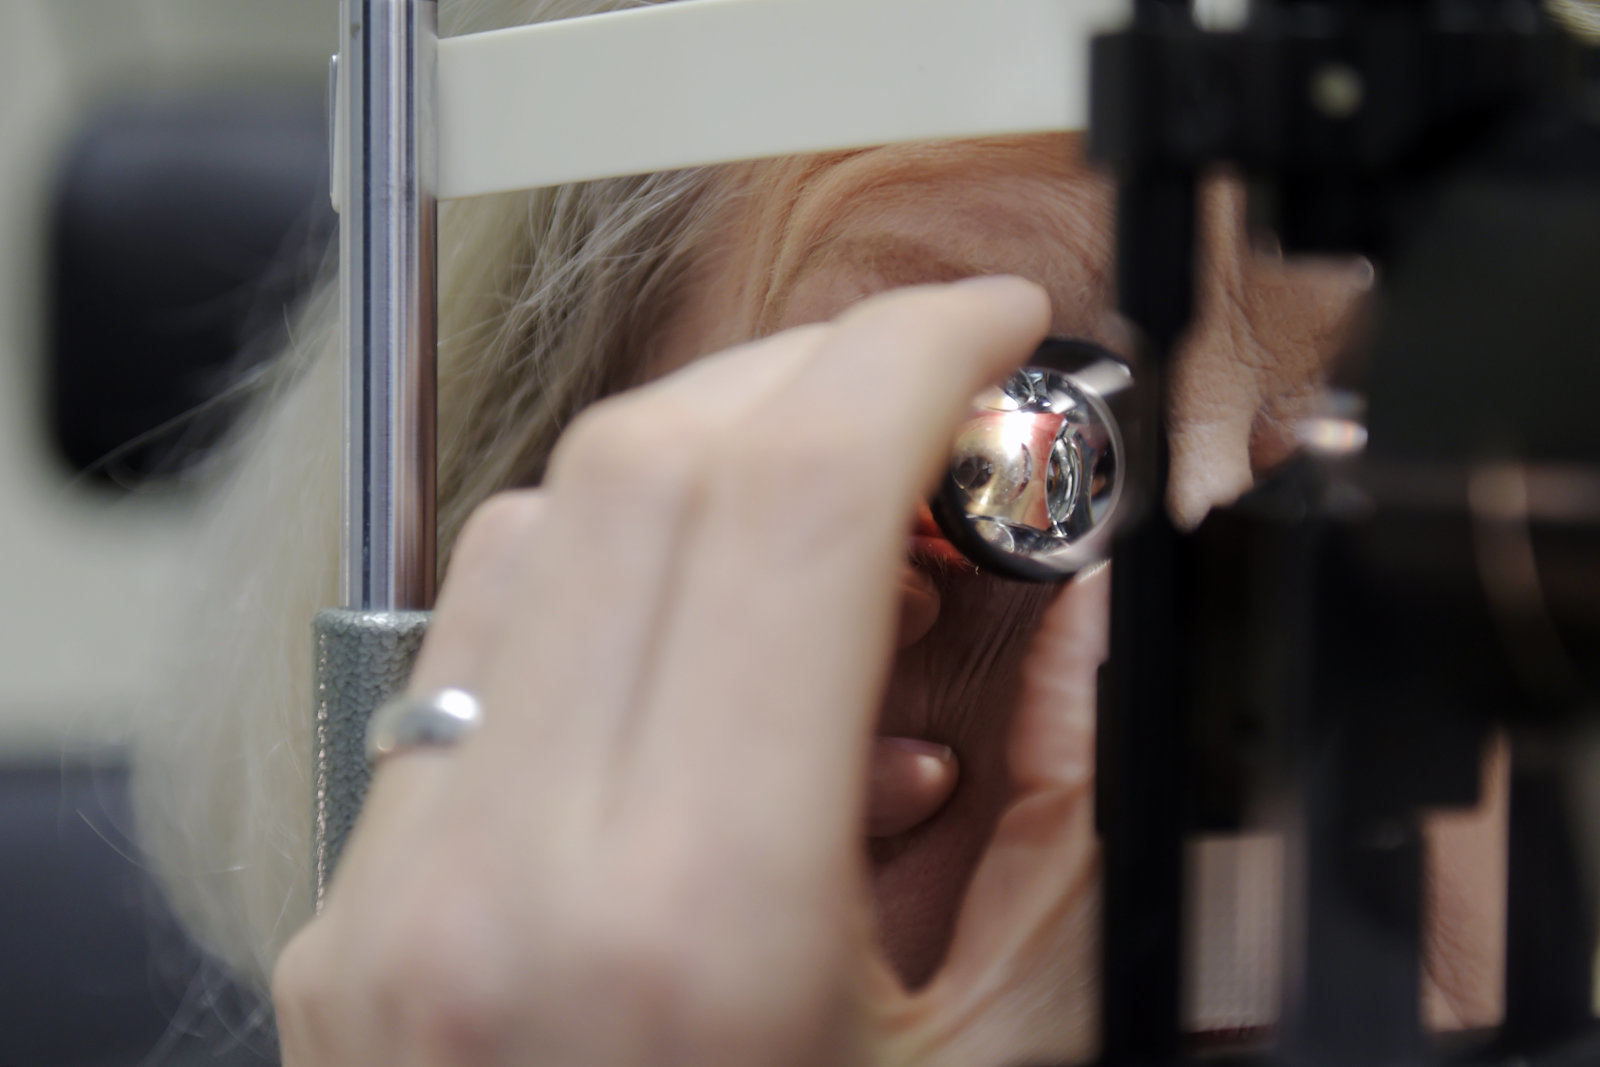 The pupil of a glaucoma patient, the recipient of an ocular implant manufactured by PolyActiva Pty Ltd., is seen through a magnifying lens during an examination at the Center for Eye Research Australia in Melbourne, Australia, on Tuesday, Aug. 21, 2018. The experimental ocular implant for treating glaucoma, the first of its kind, dispenses a constant daily dose of medicine as it dissolves over six months. Photographer: Carla Gottgens/Bloomberg via Getty Images